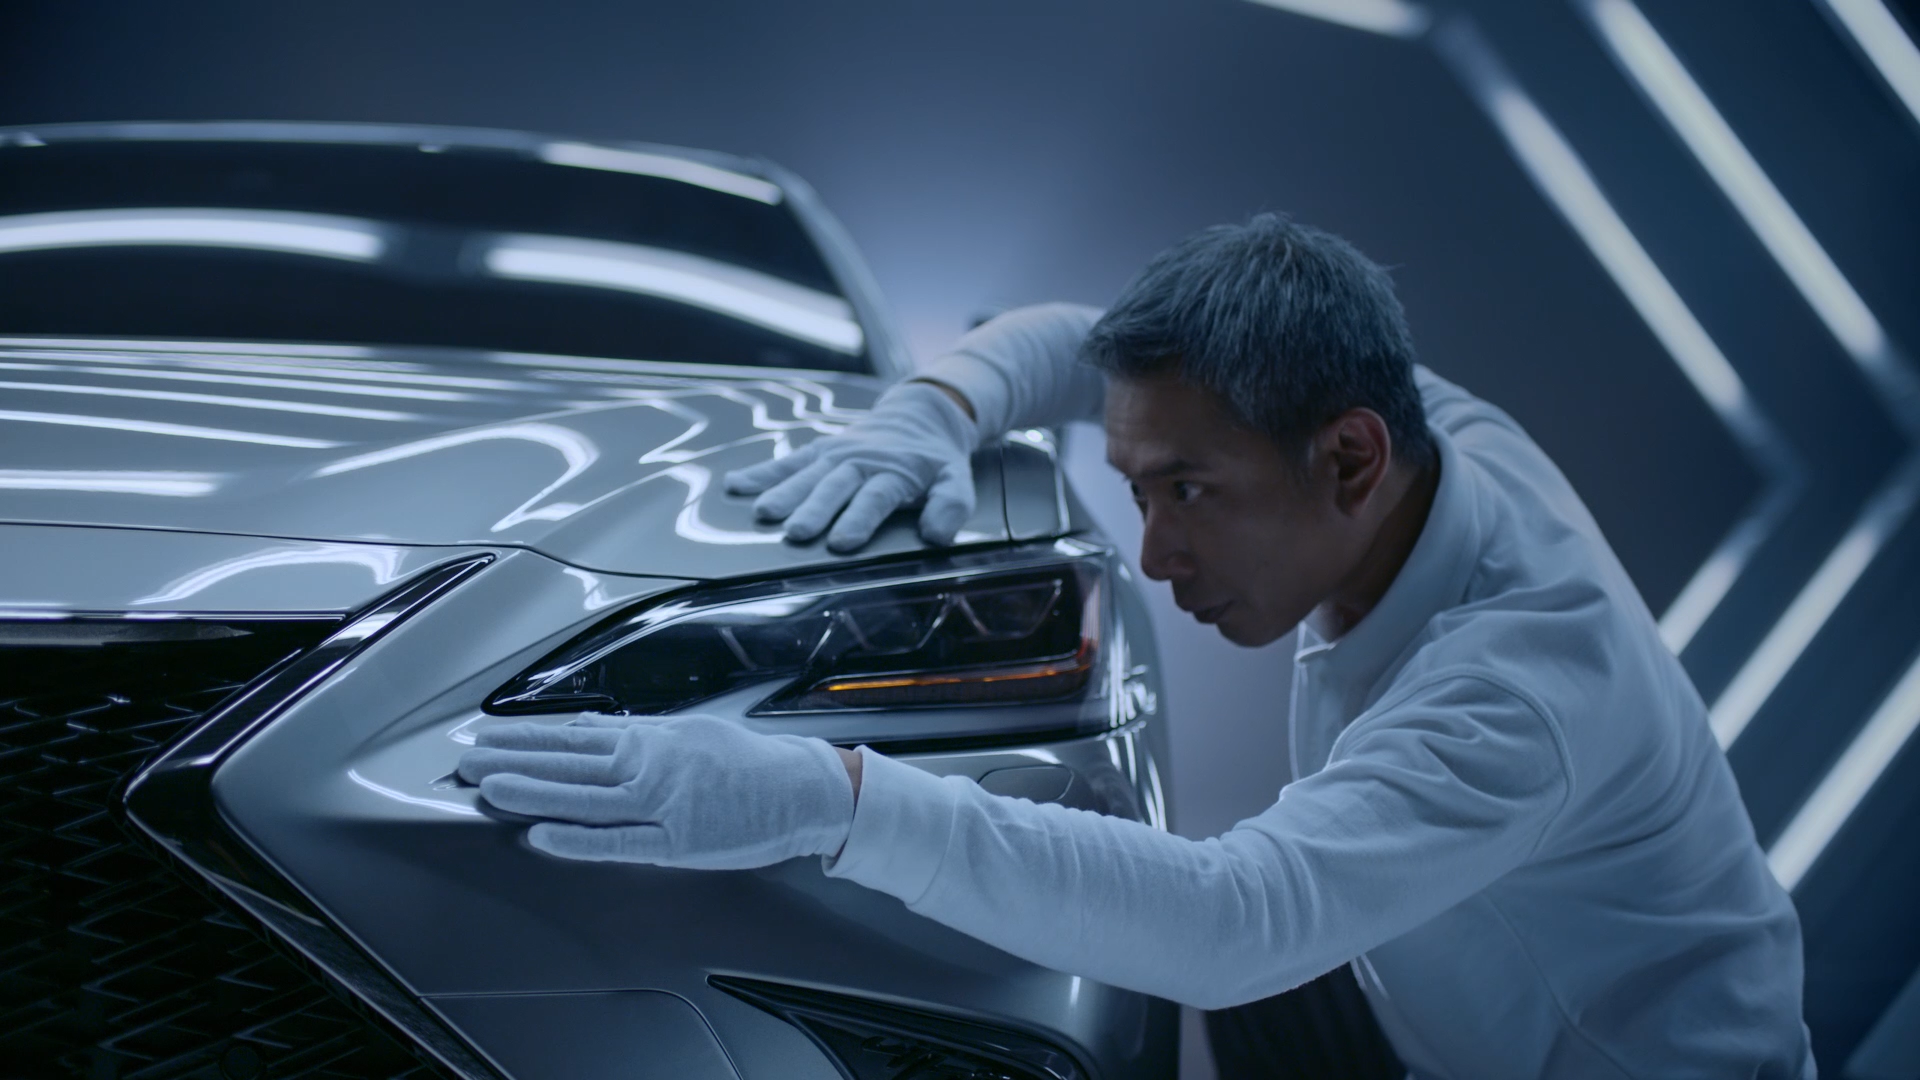 Big Buoy - New Lexus ES ad scripted entirely by artificial intelligence